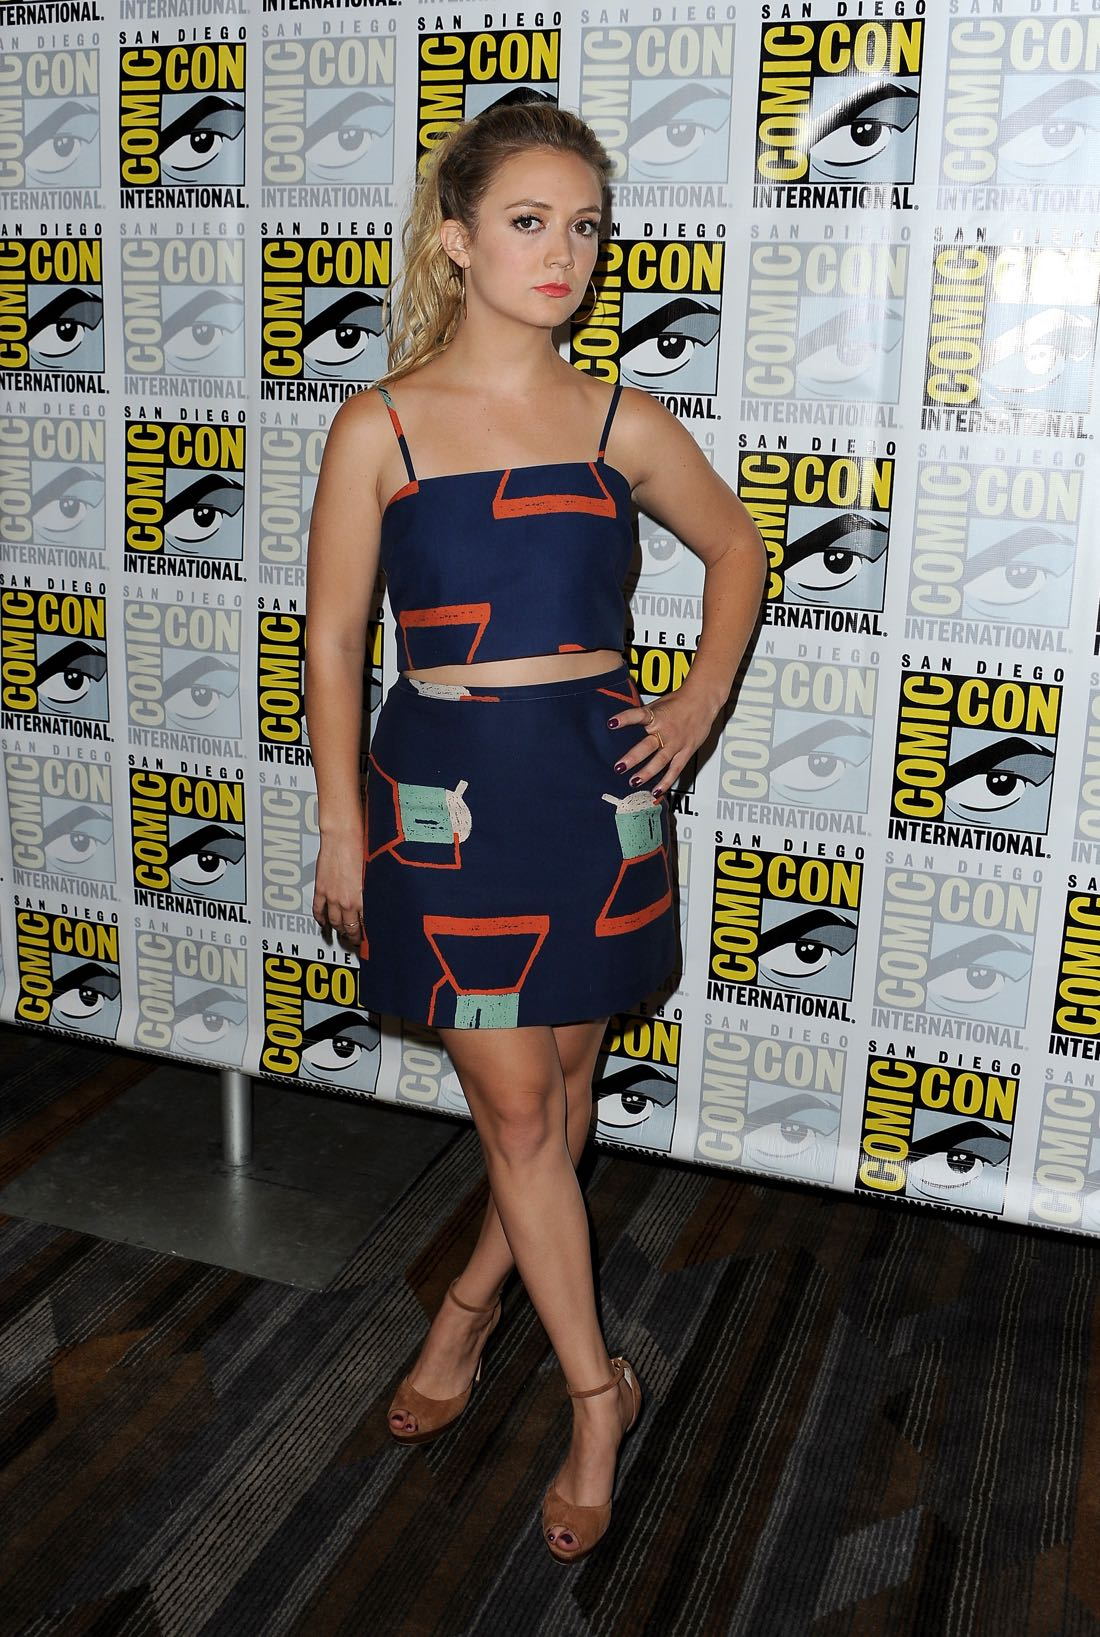 FOX FANFARE AT SAN DIEGO COMIC-CON © 2016: SCREAM QUEENS cast member Billie Lourd during the SCREAM QUEENS press room on Friday, July 22 at the FOX FANFARE AT SAN DIEGO COMIC-CON © 2016. CR: Scott Krikland/FX © 2016 FOX BROADCASTING